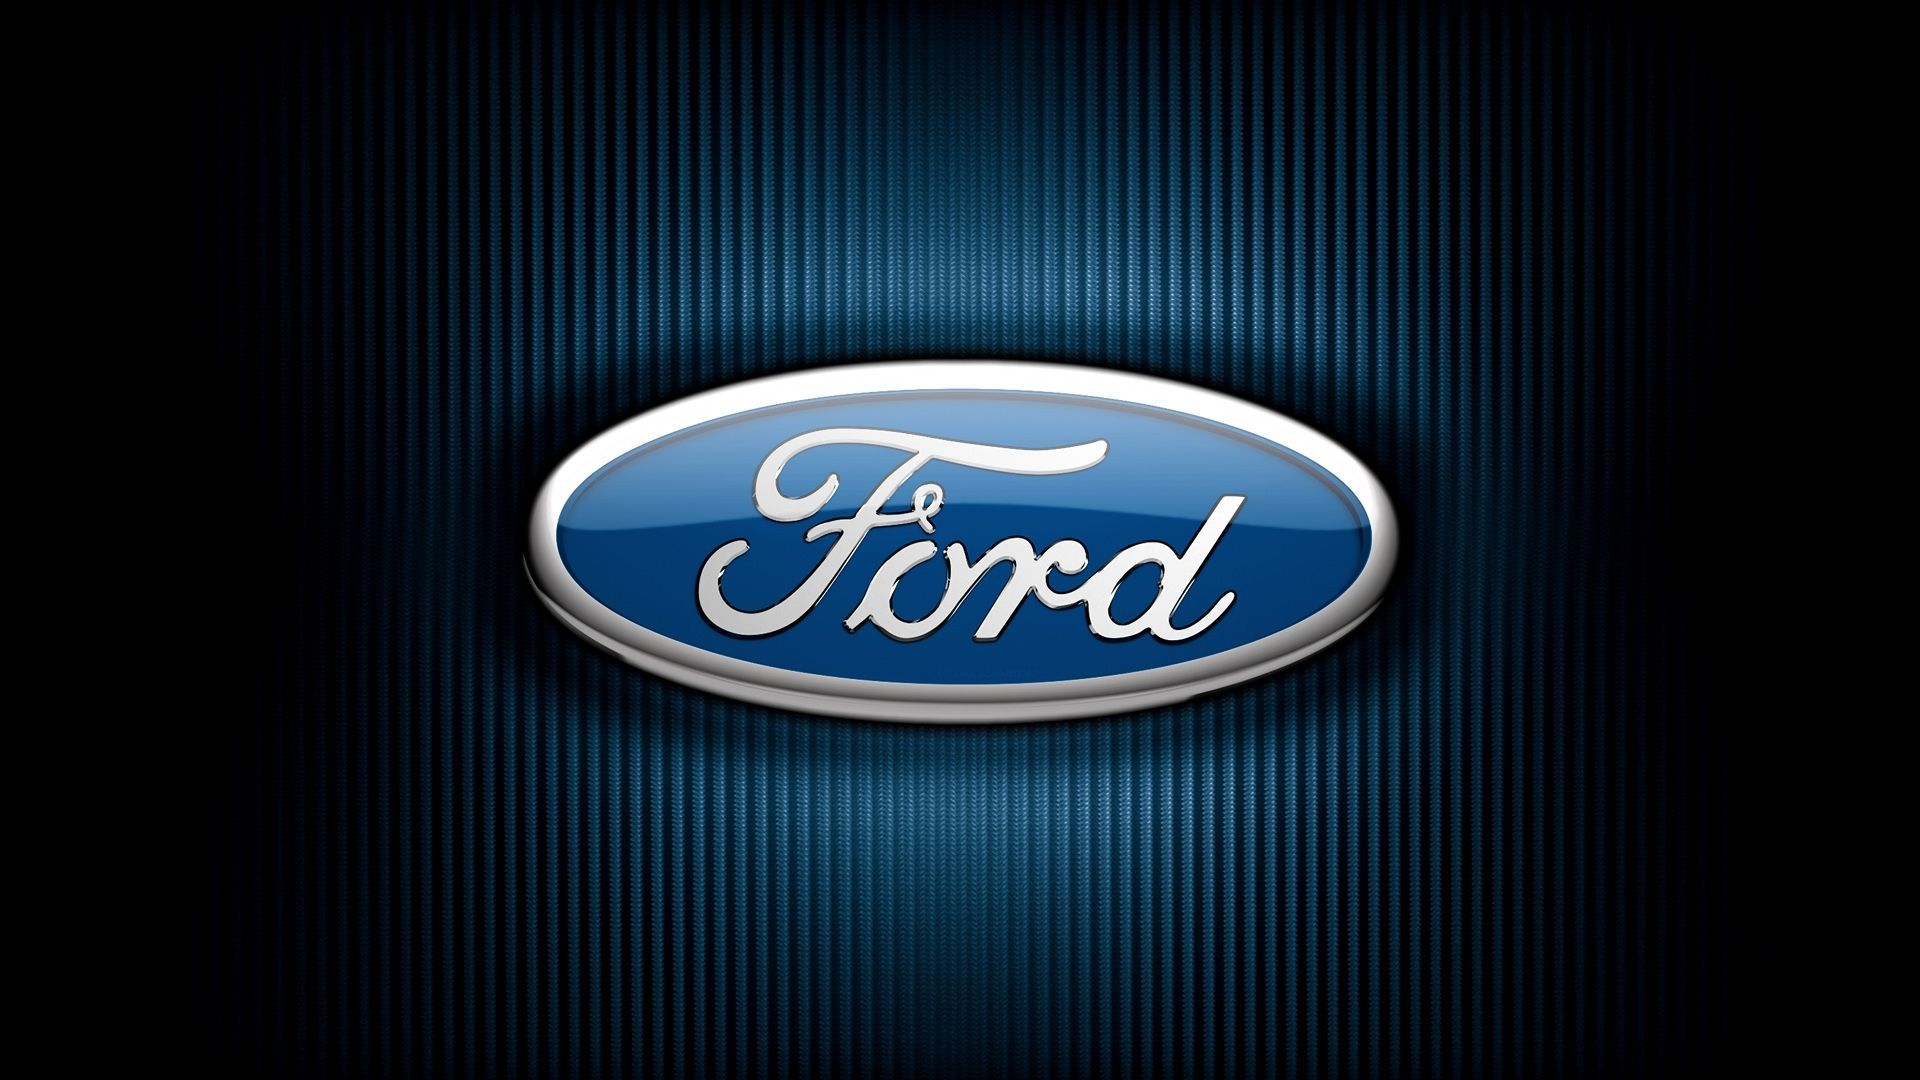 Ford Logo - ford logo wallpaper 1920 X 1080 | Ford Logo | Pinterest | Ford, Ford ...